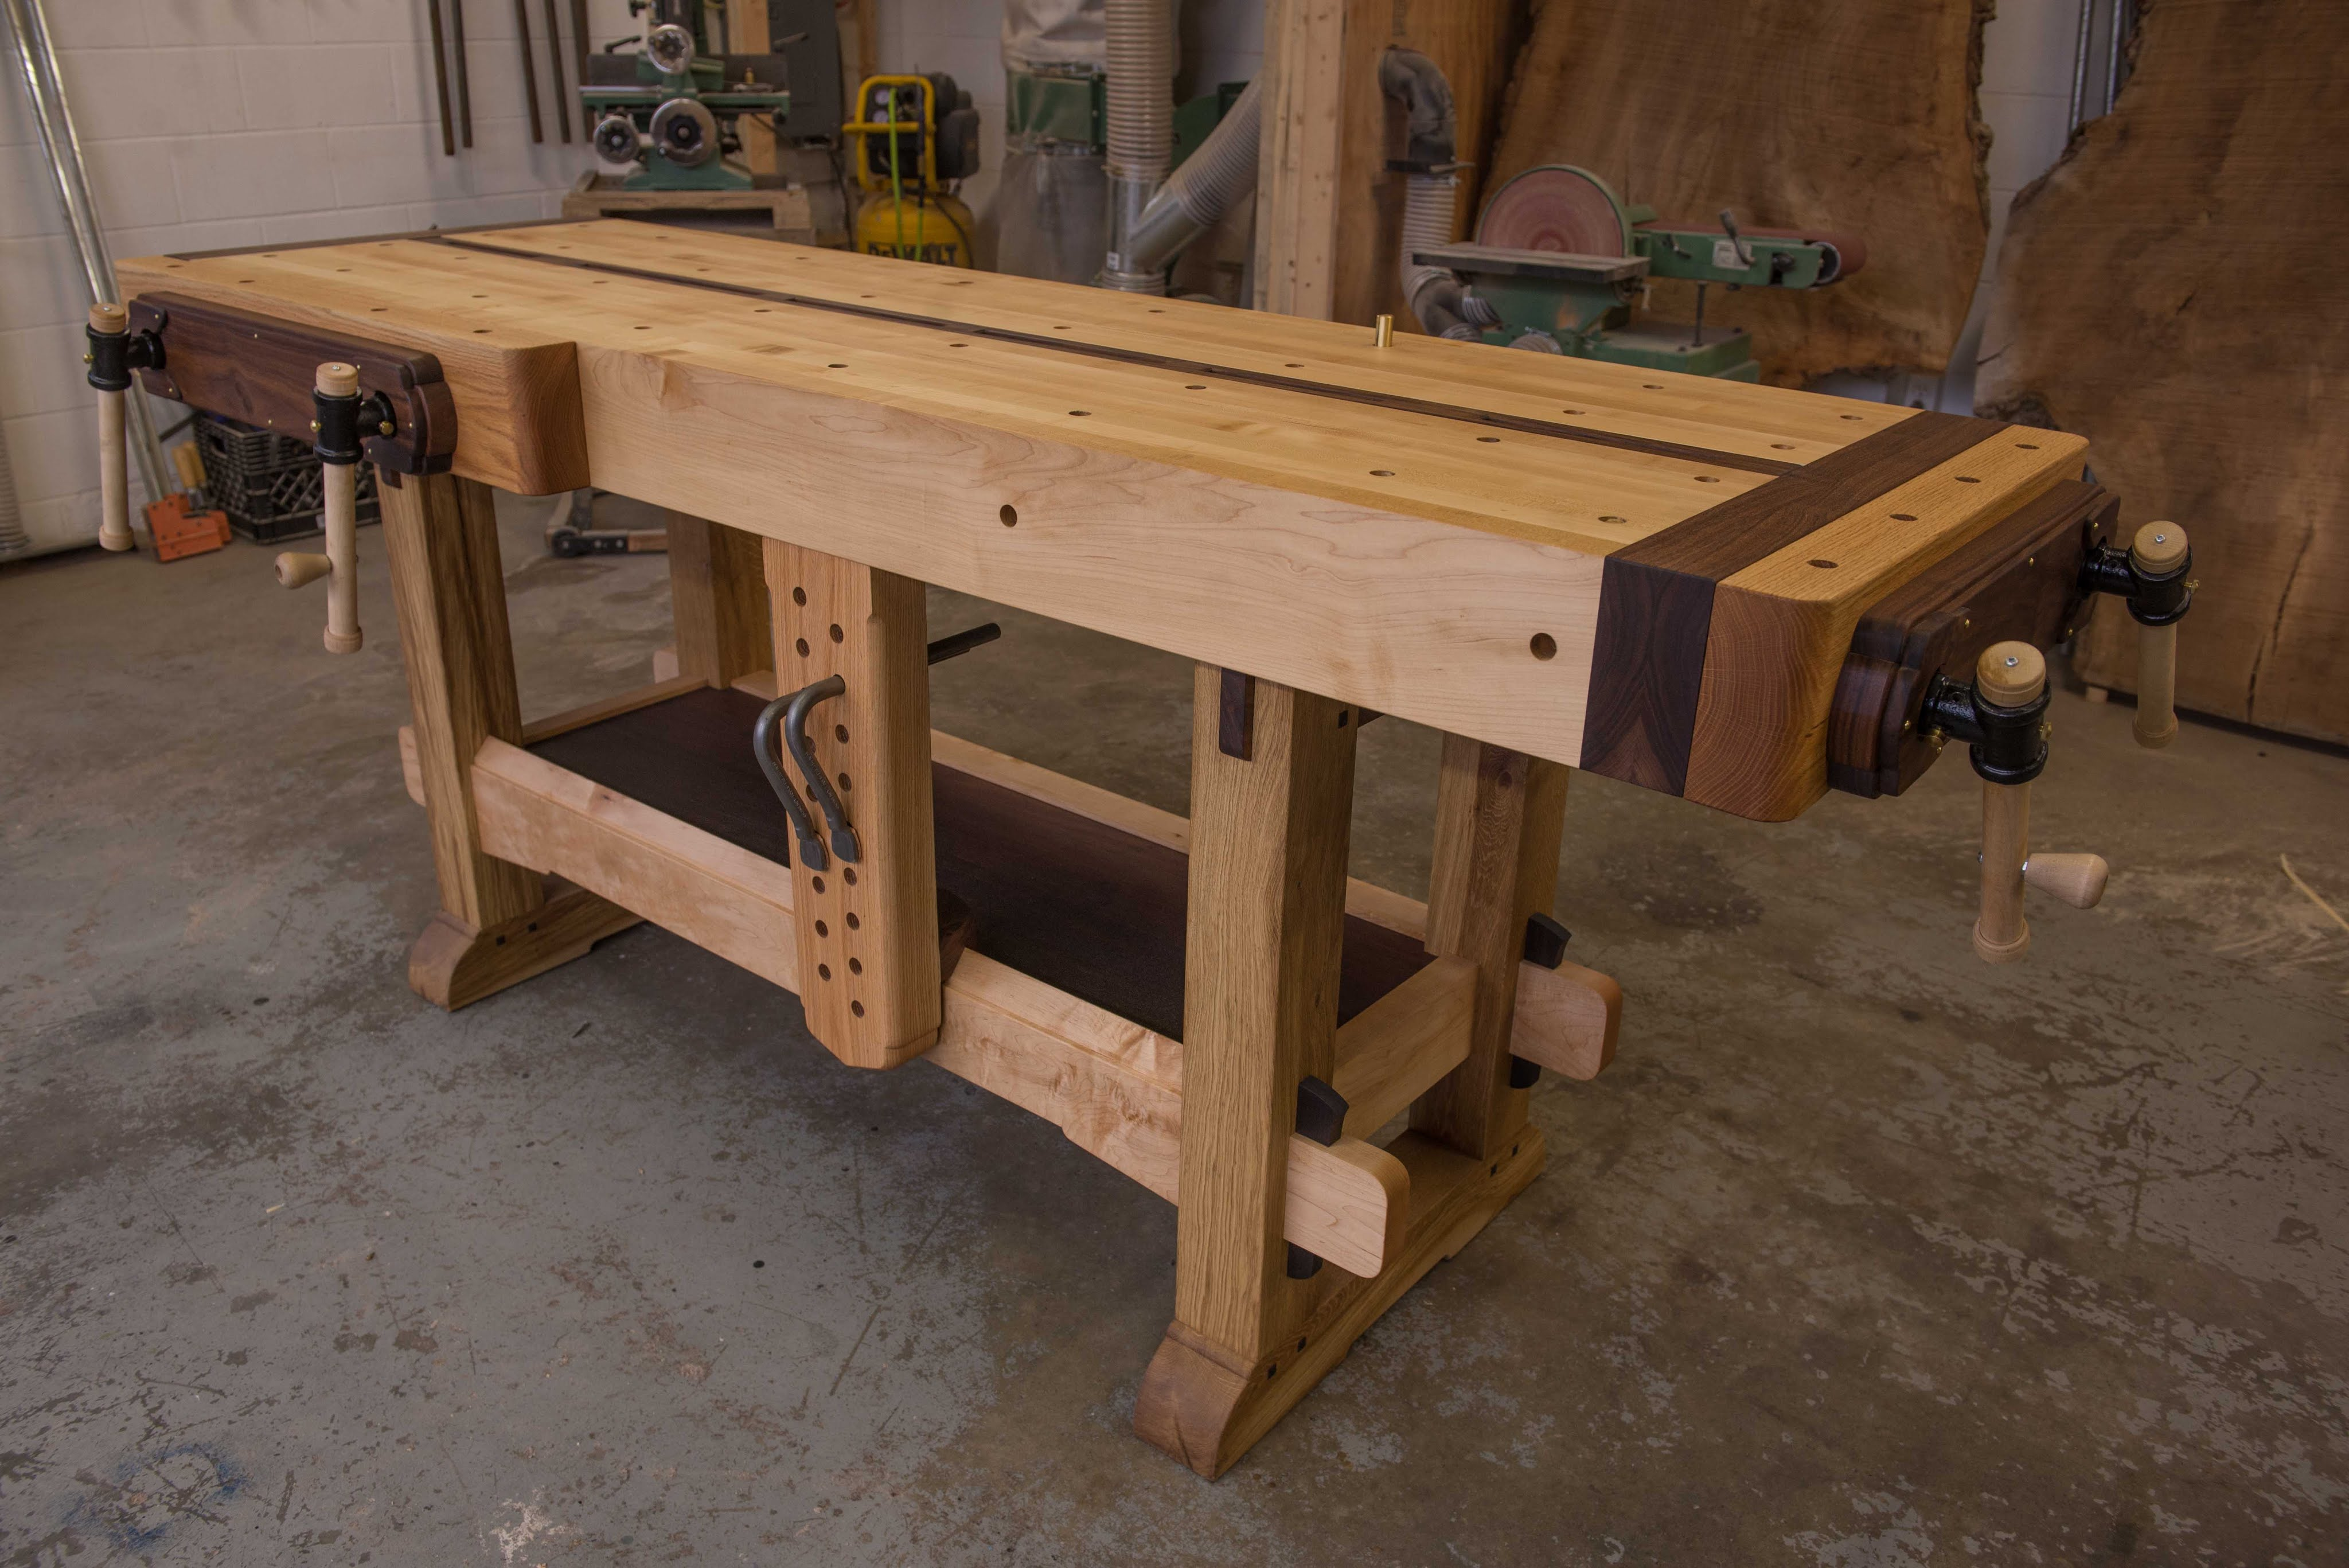 How to Build the Samurai Workbench